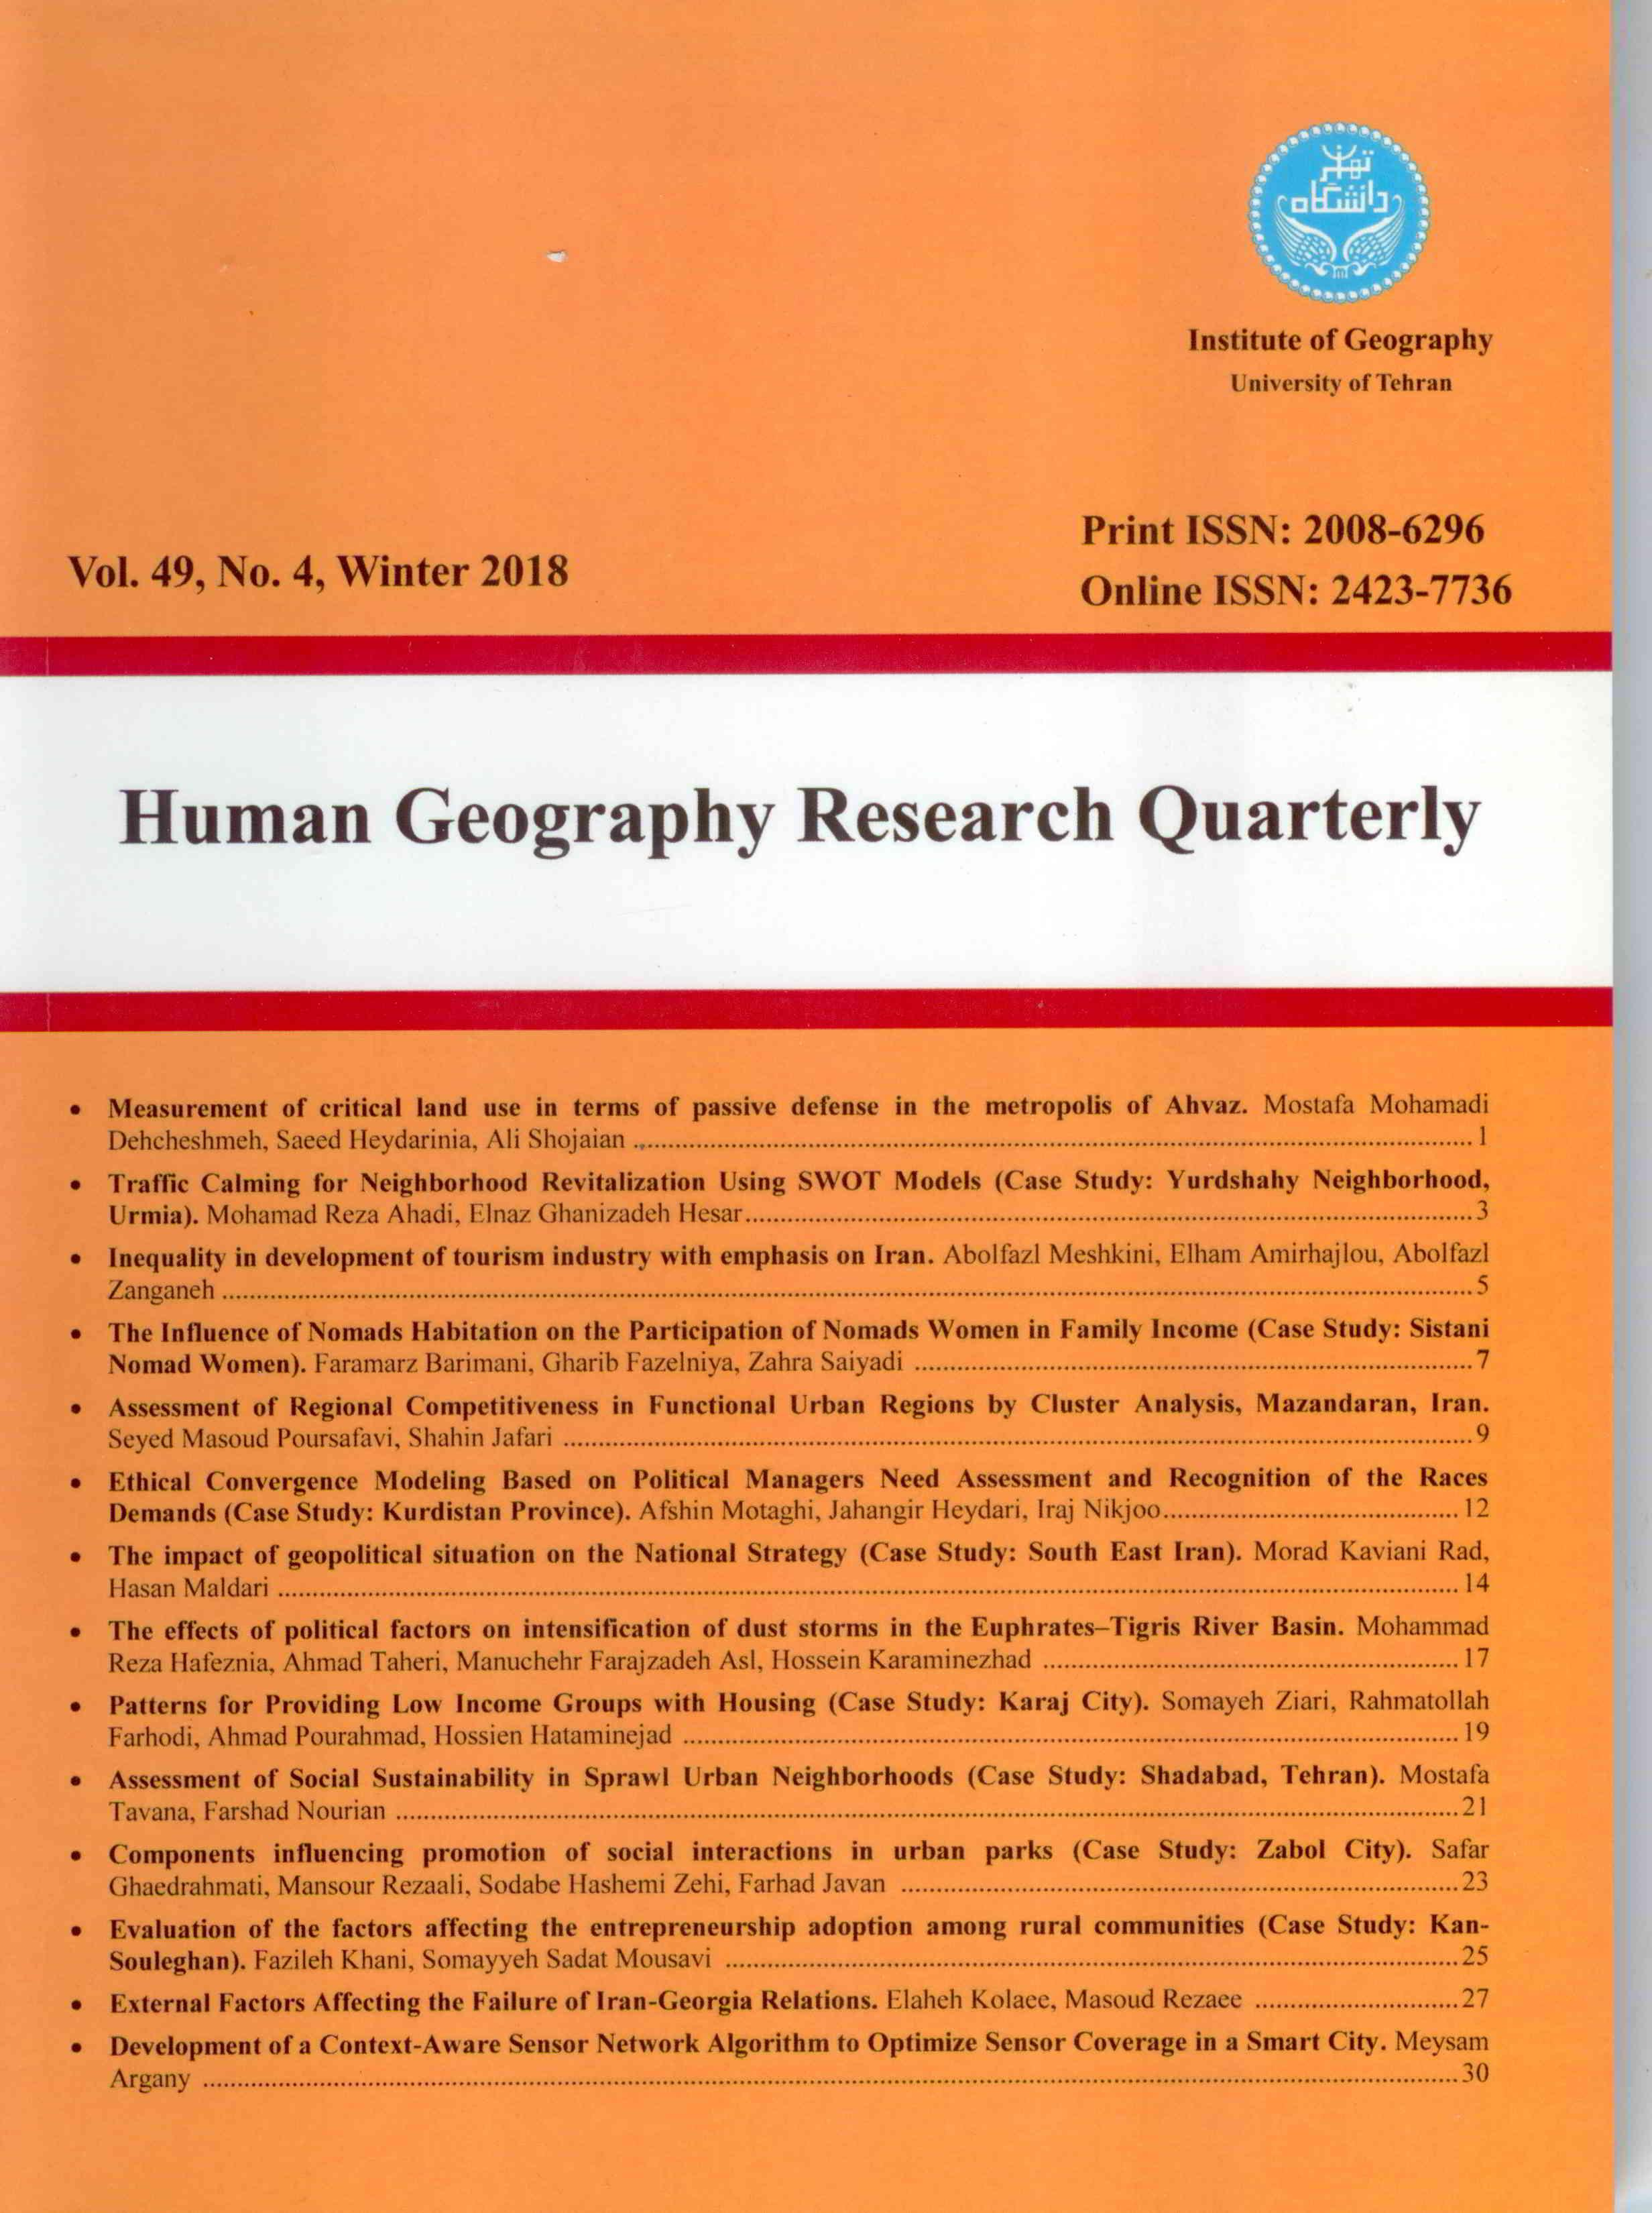 Human Geography Research